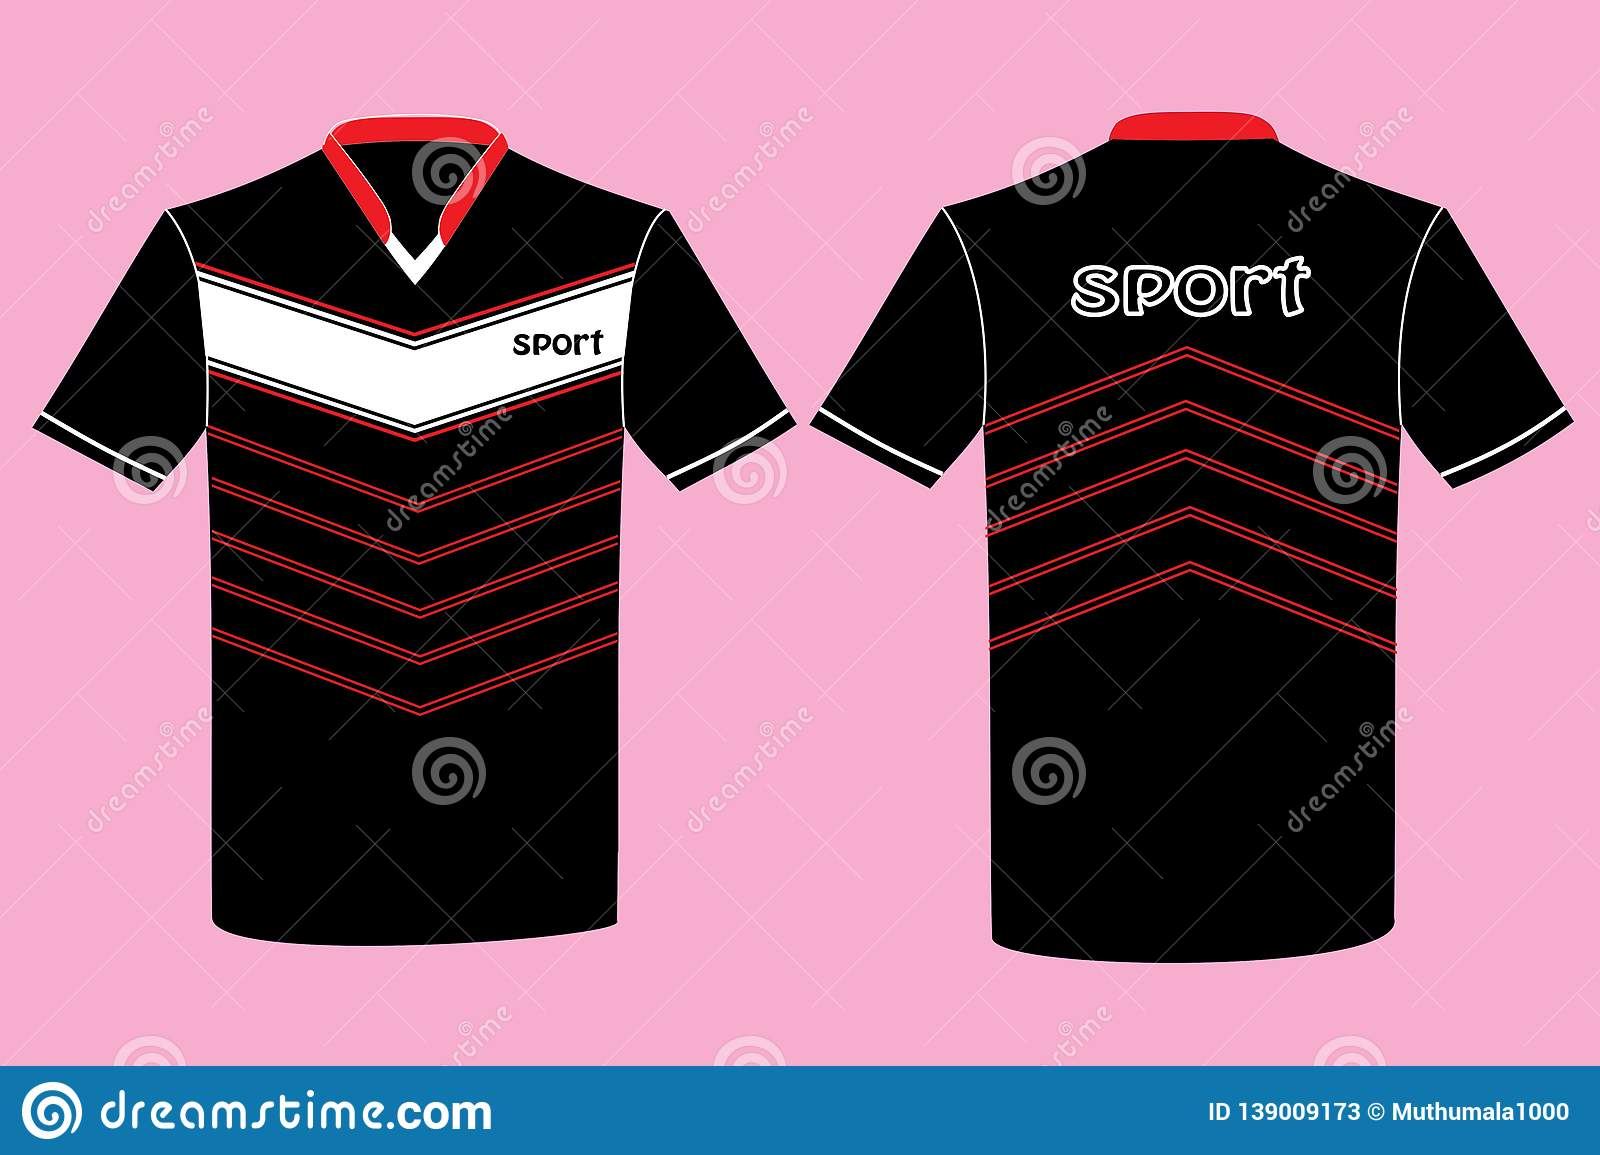 graphic regarding Printable T Shirt titled Editable T-blouse Structure Template 03+vector Inventory Vector